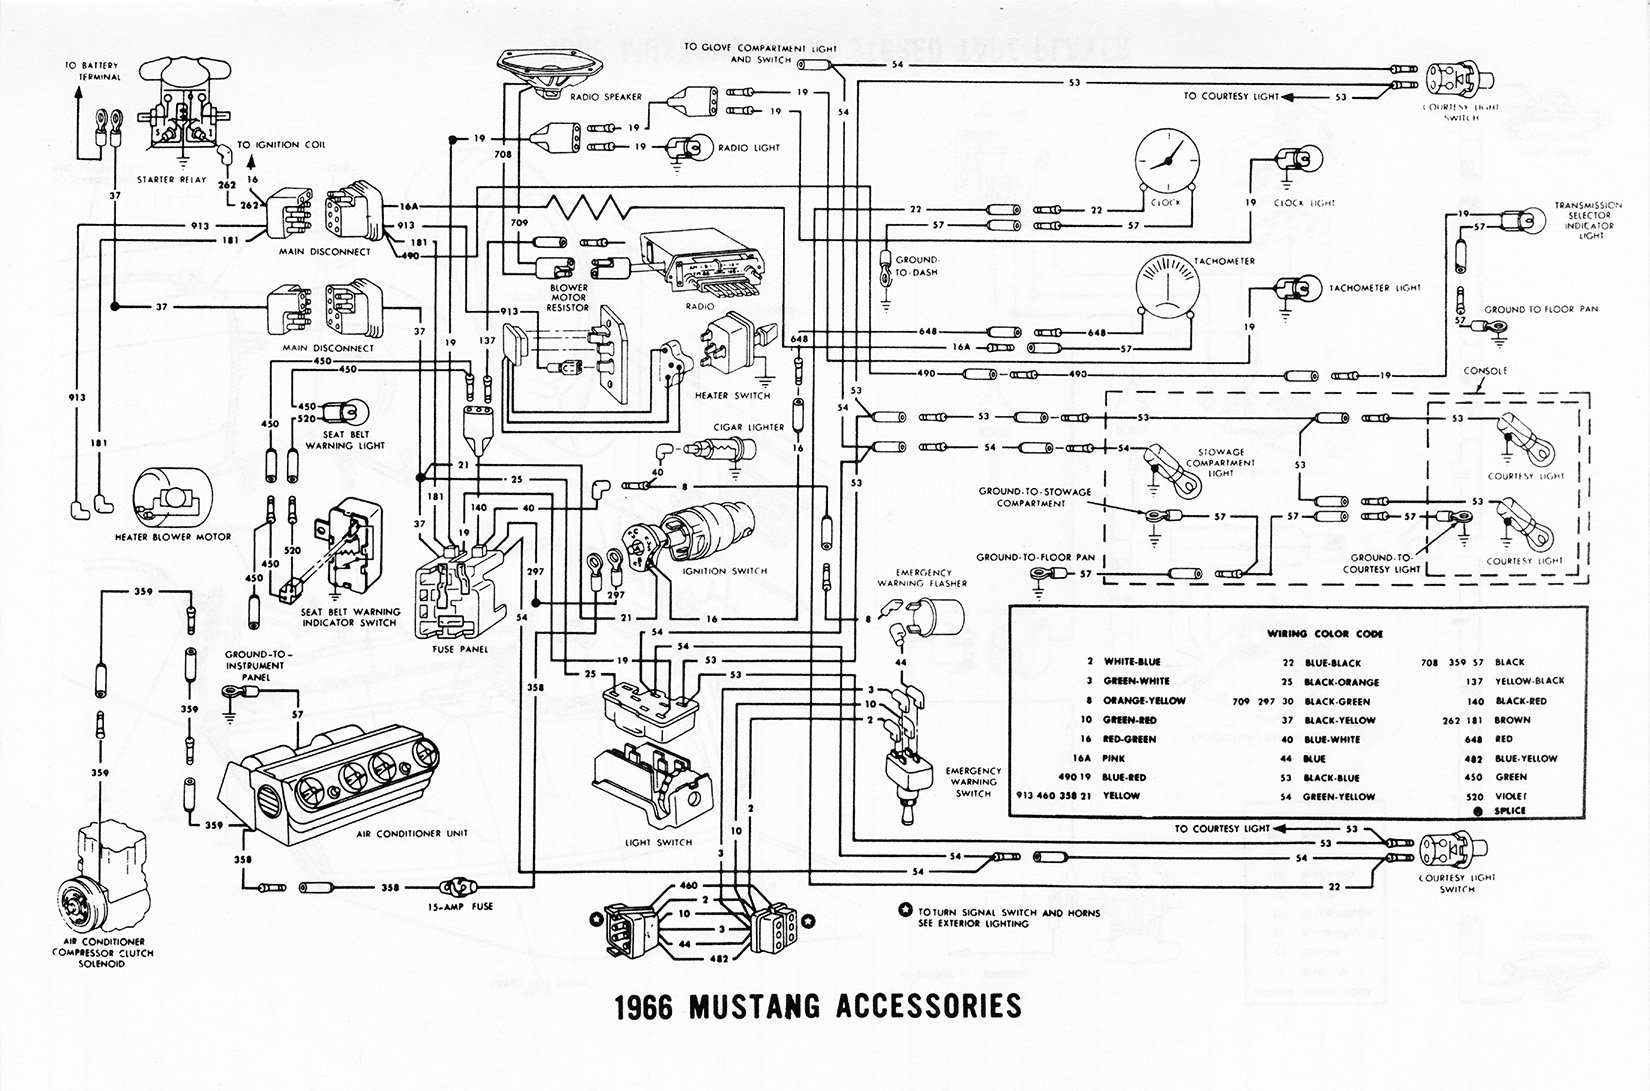 1974 Dodge Tachometer Wiring Trusted Diagrams Tach Wire Diagram For 1966 Power Wagon Schematic Backup Camera